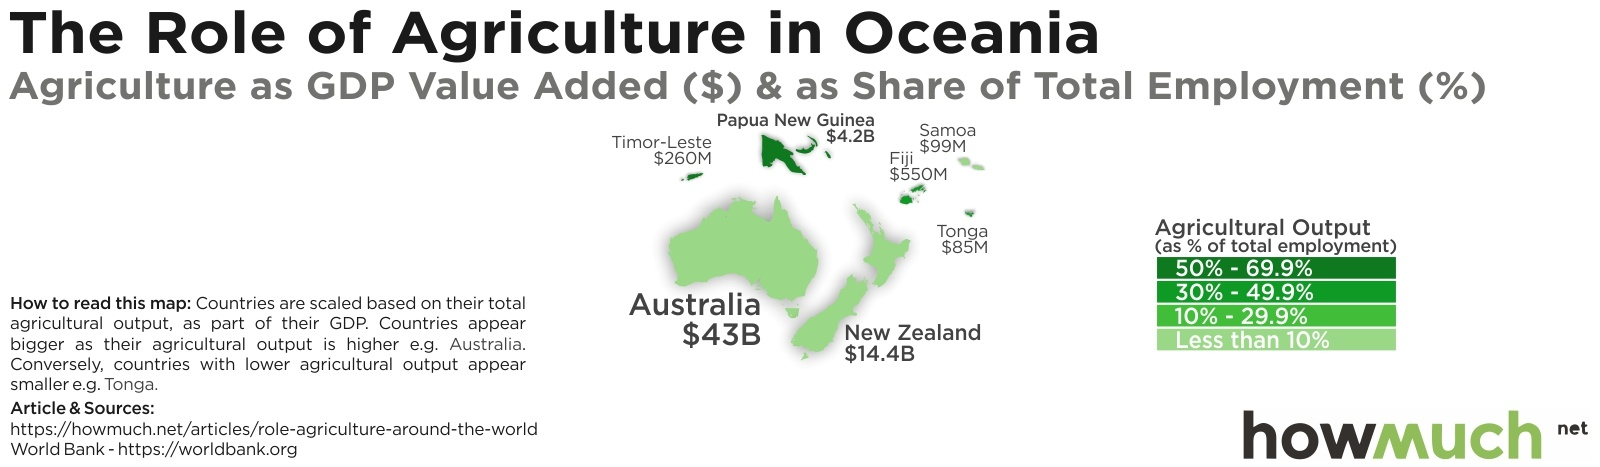 agriculture as a share of GDP in oceania